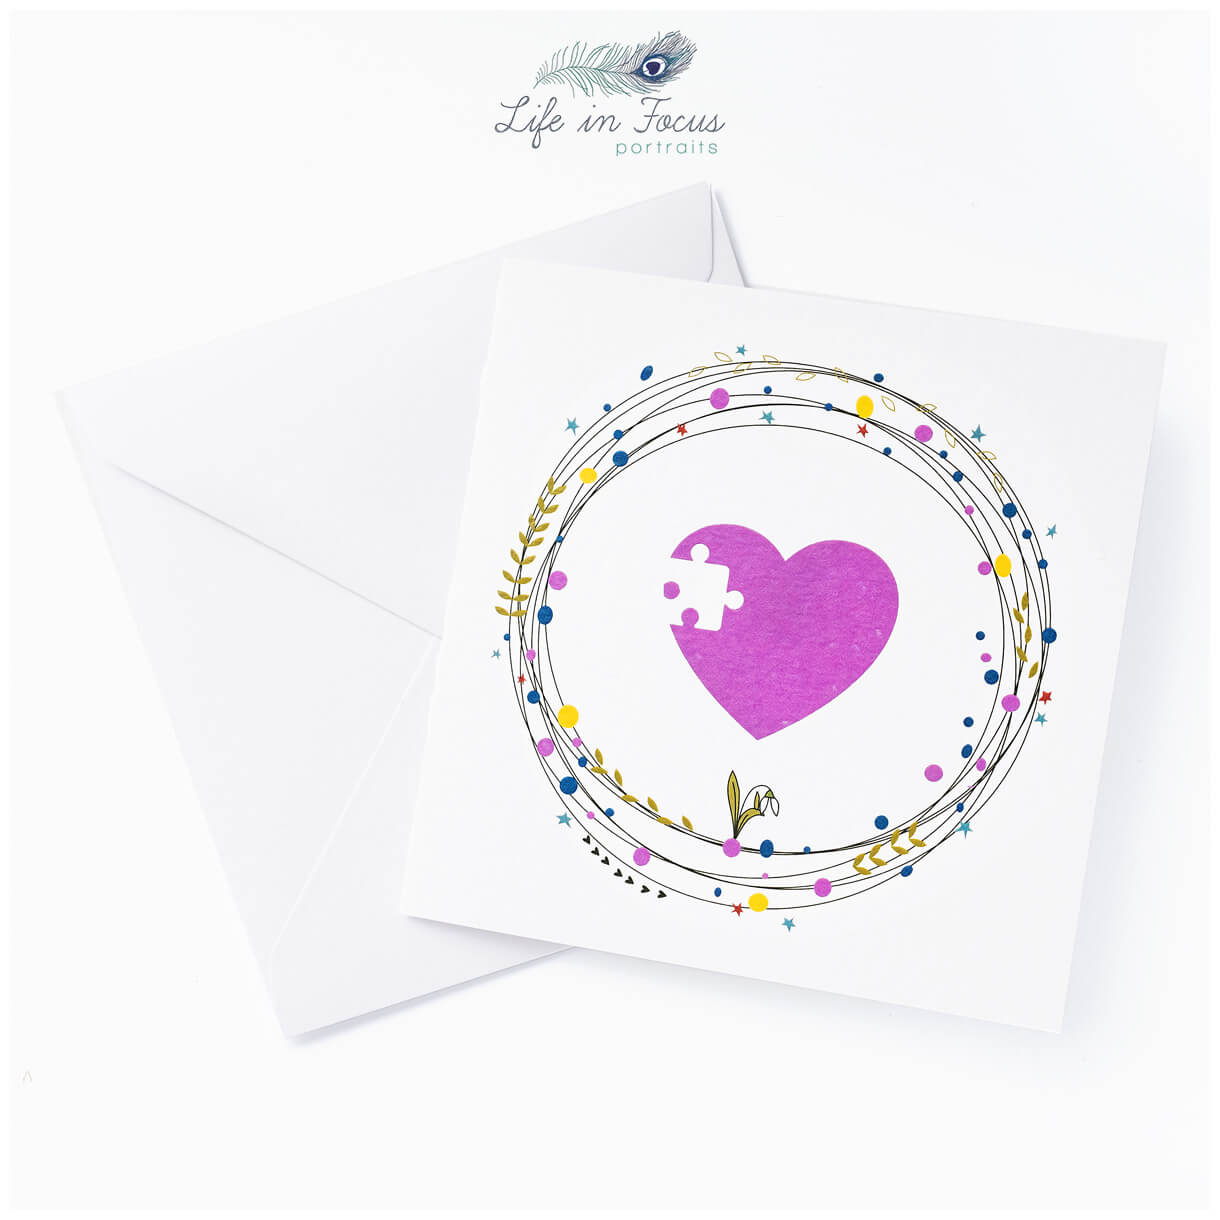 child bereavement charity card white backgound Life in Focus Portraits product photography Helensburgh